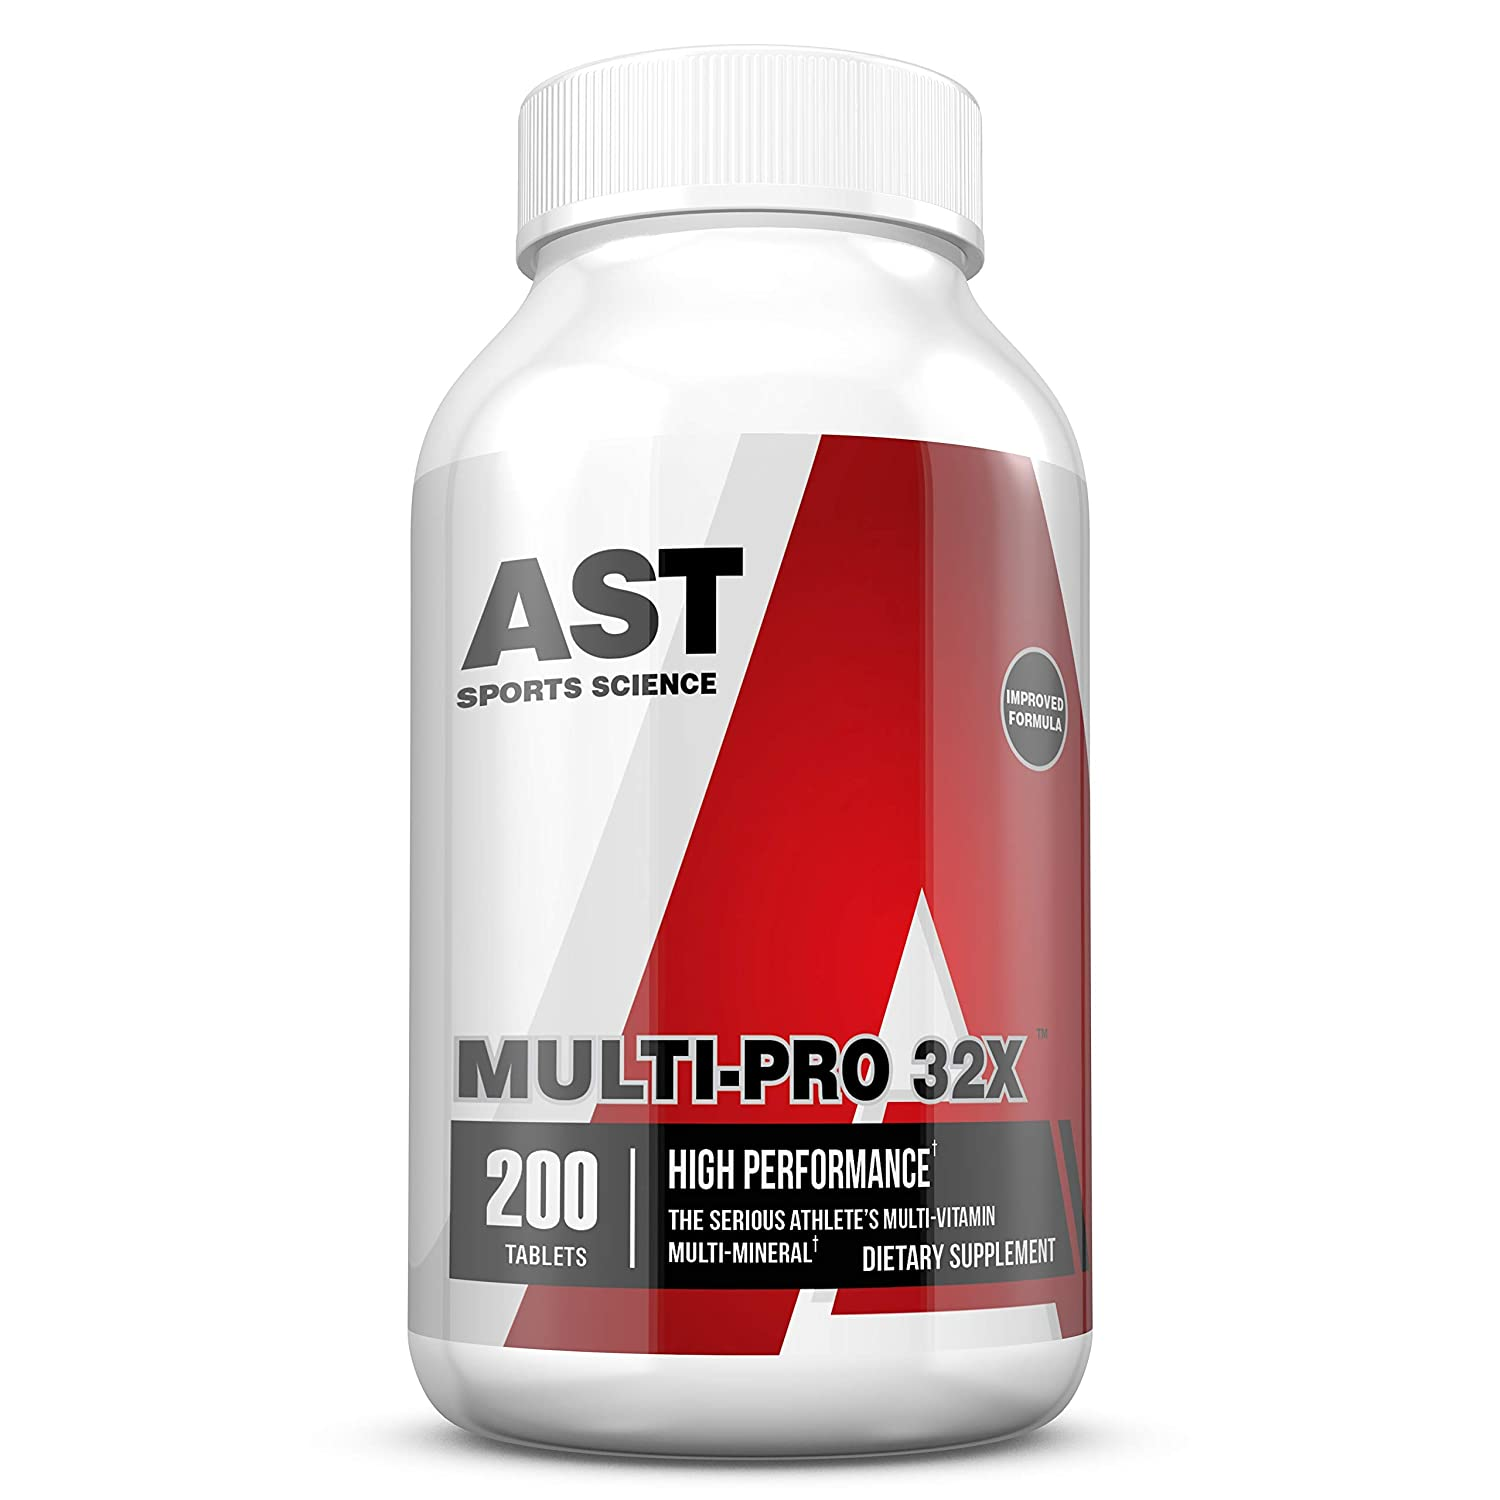 Multi-Vitamin Multi-Mineral – MultiPro 32X – 200 Tablets – AST Sports Science. High-Performance Multi for Optimizing Health and Performance.